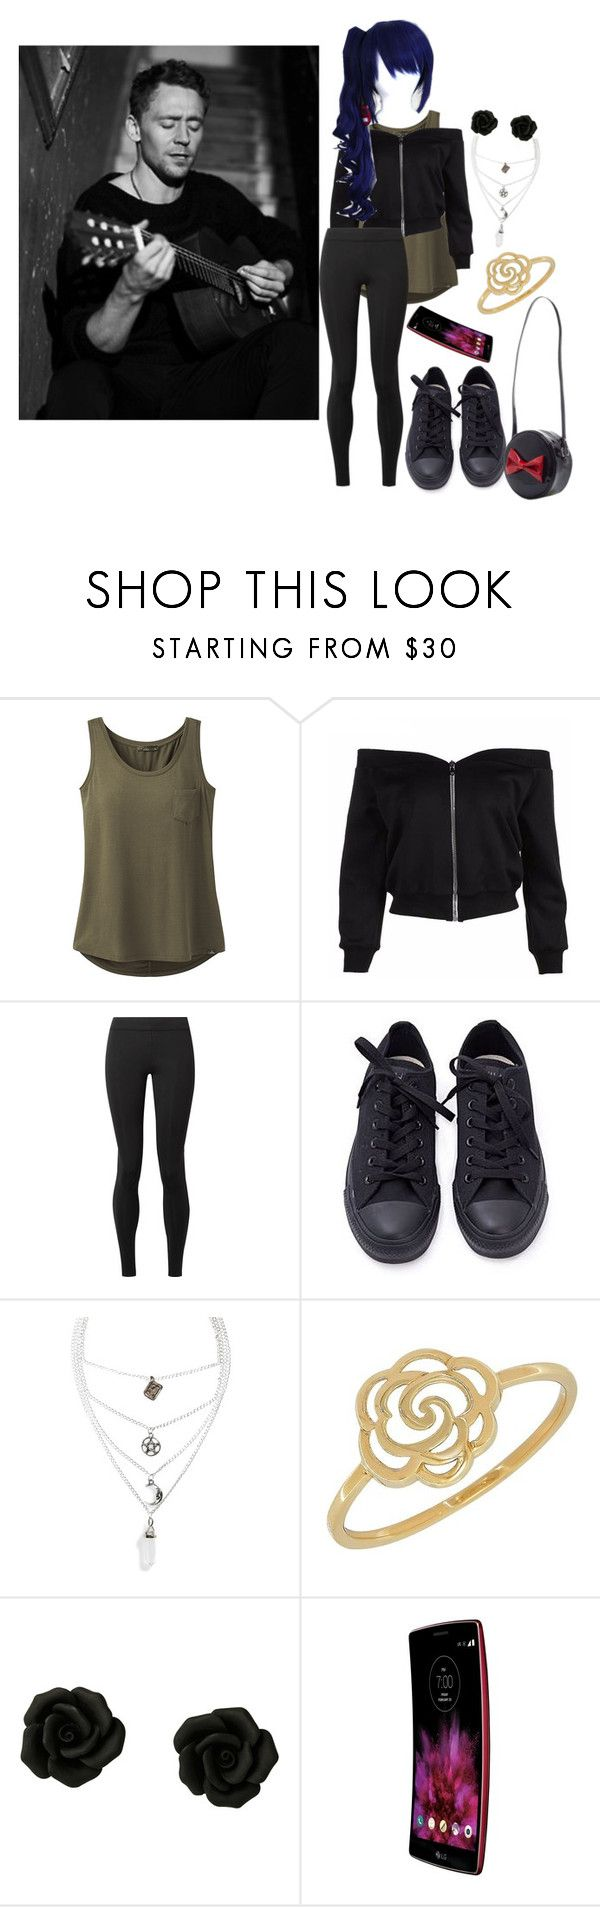 """""""imagine tom hiddleston singing a song to you"""" by cittymotionless ❤ liked on Polyvore featuring prAna, The Row, Converse, Mysticum Luna and Lord & Taylor"""